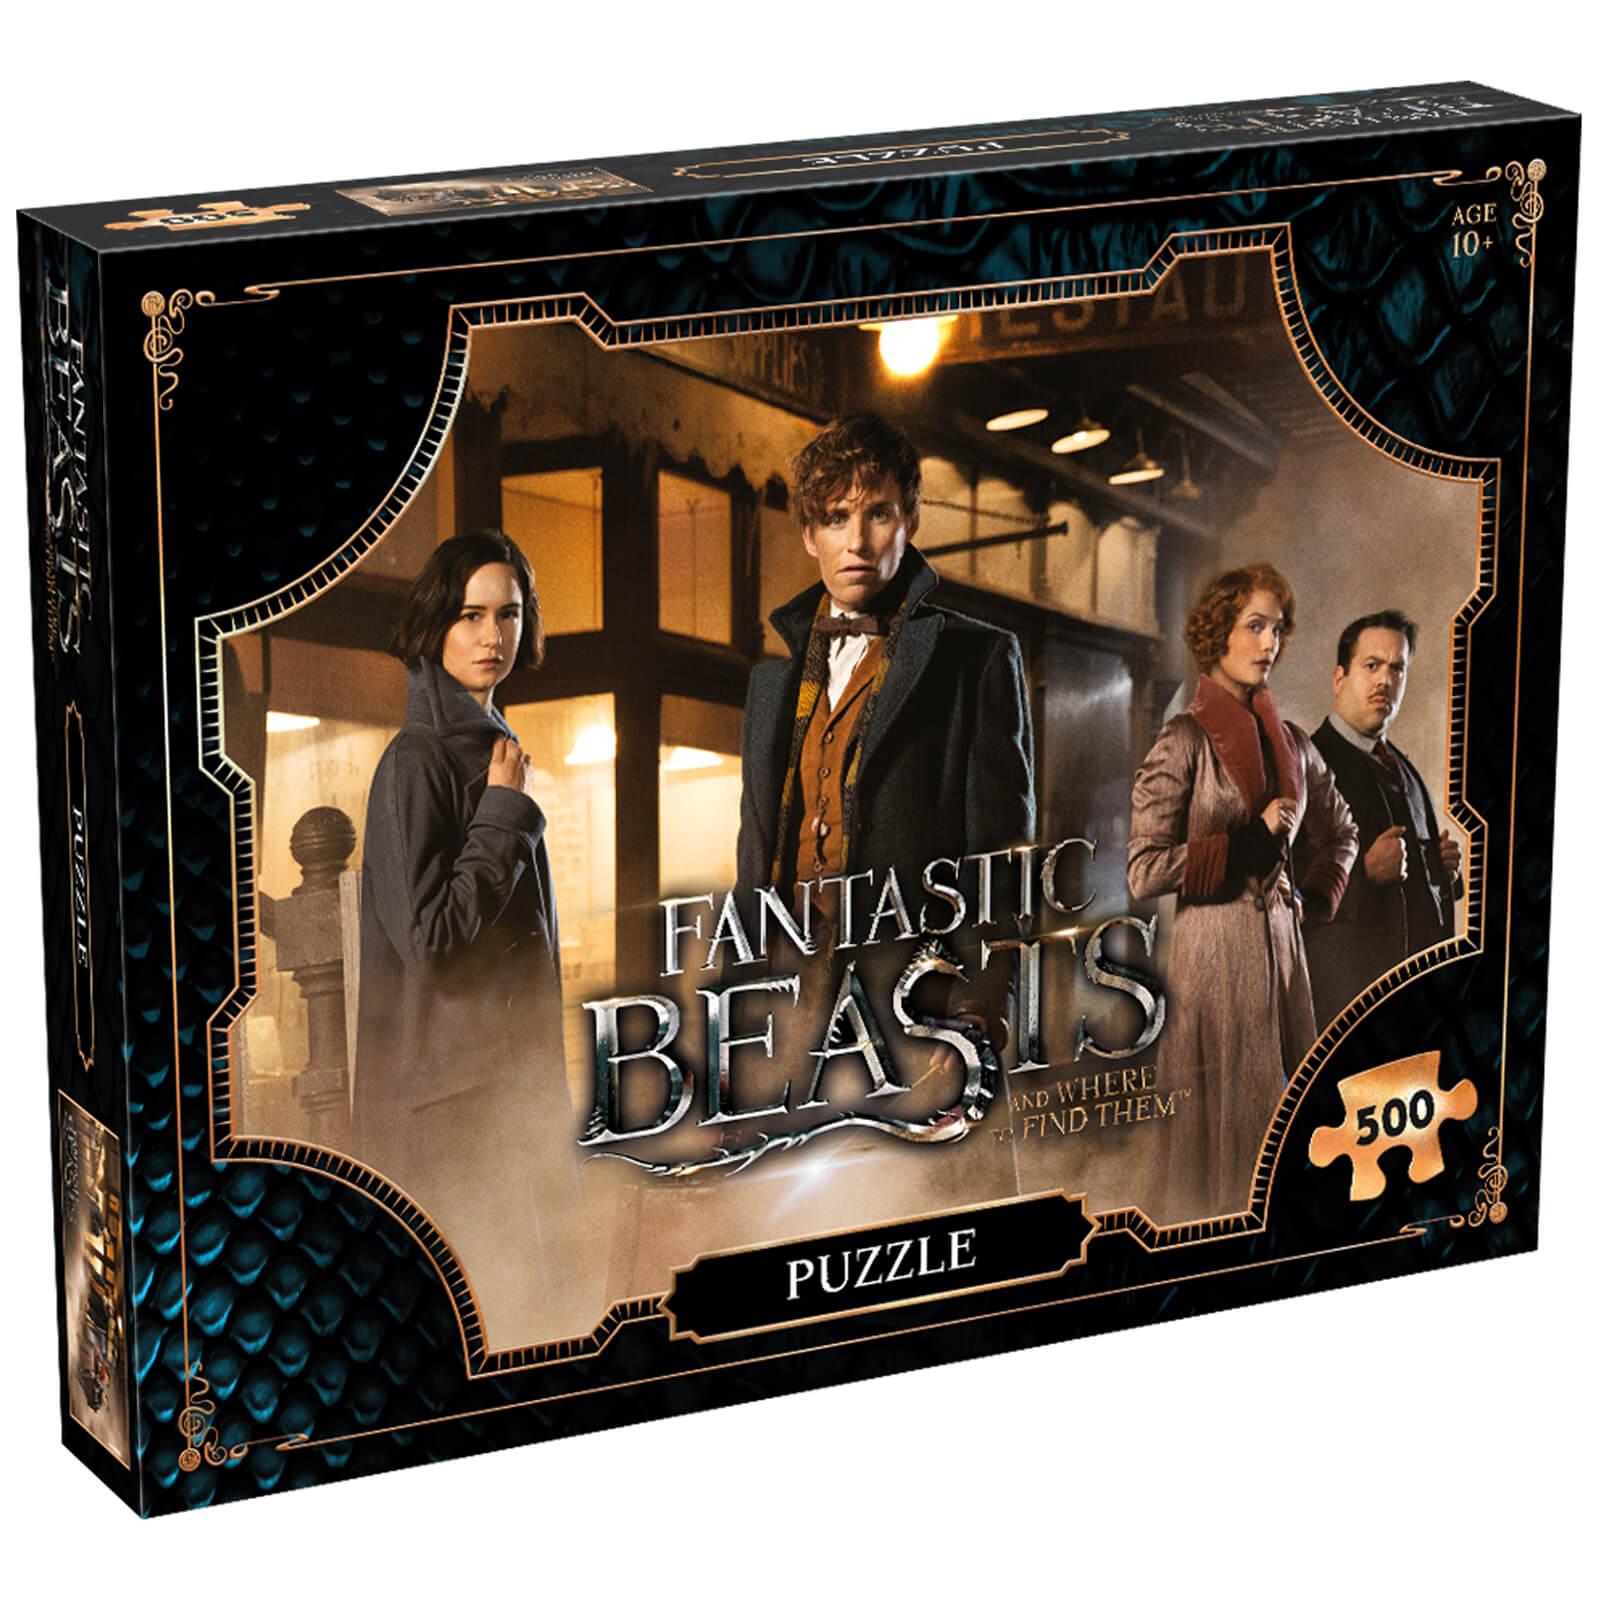 Image of 500 Piece Jigsaw Puzzle - Fantastic Beasts Field Edition